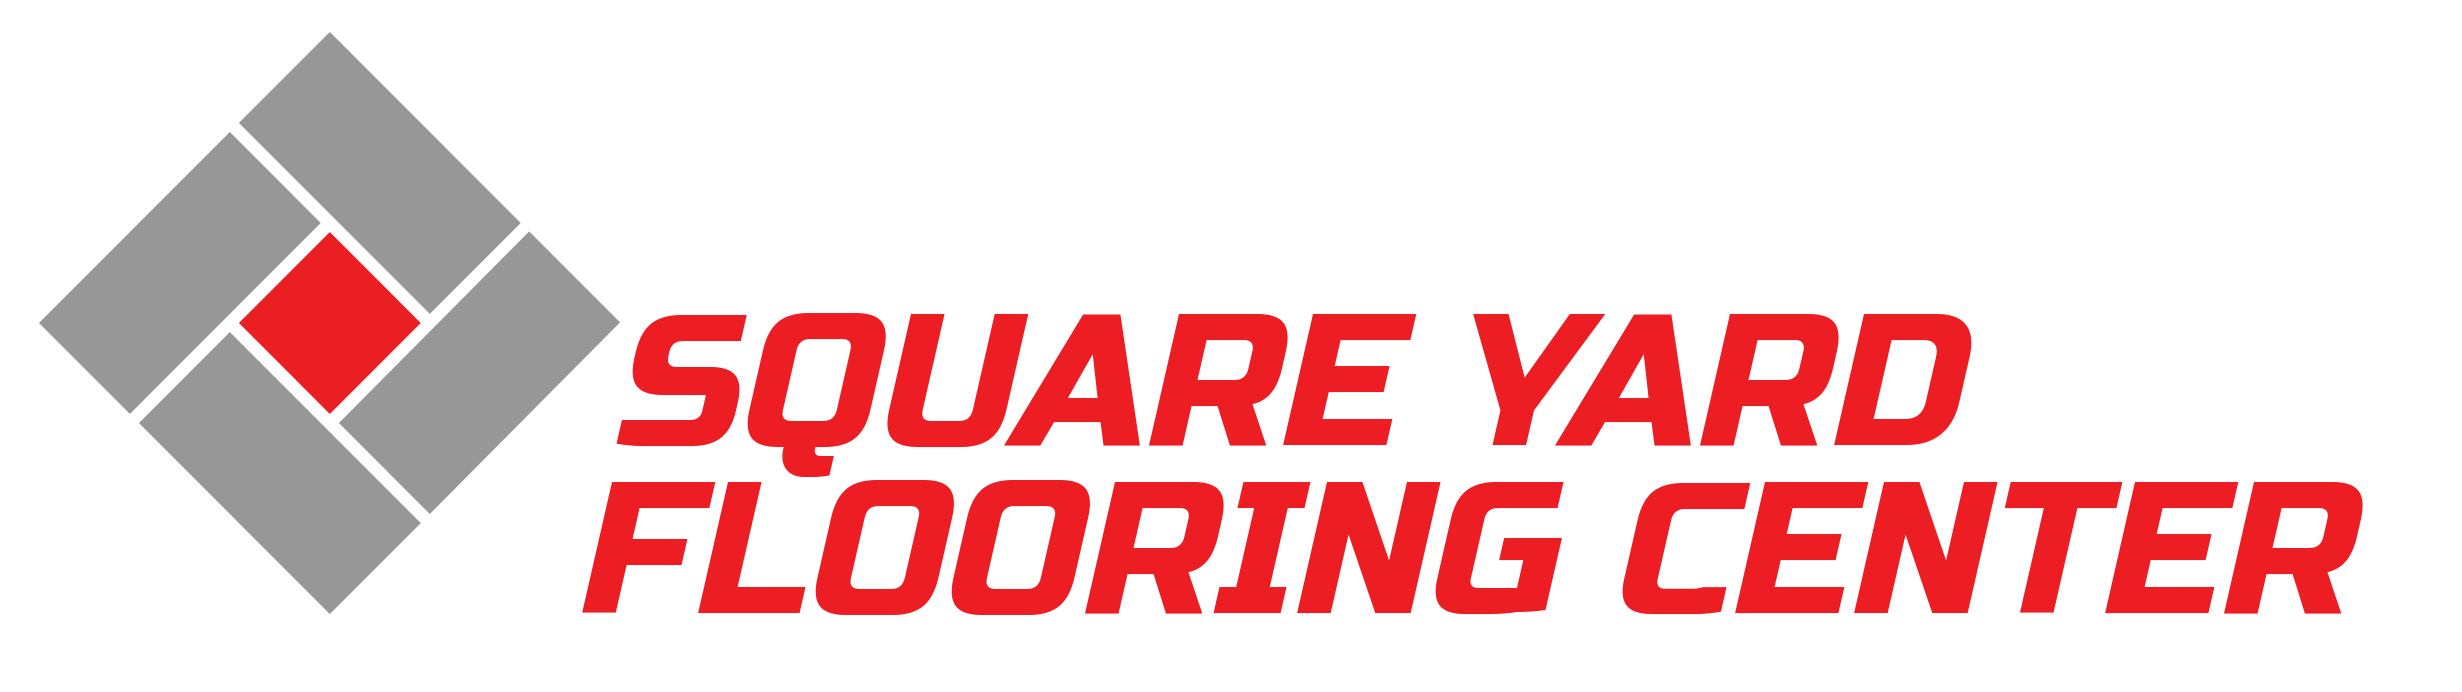 Square Yard Flooring Center